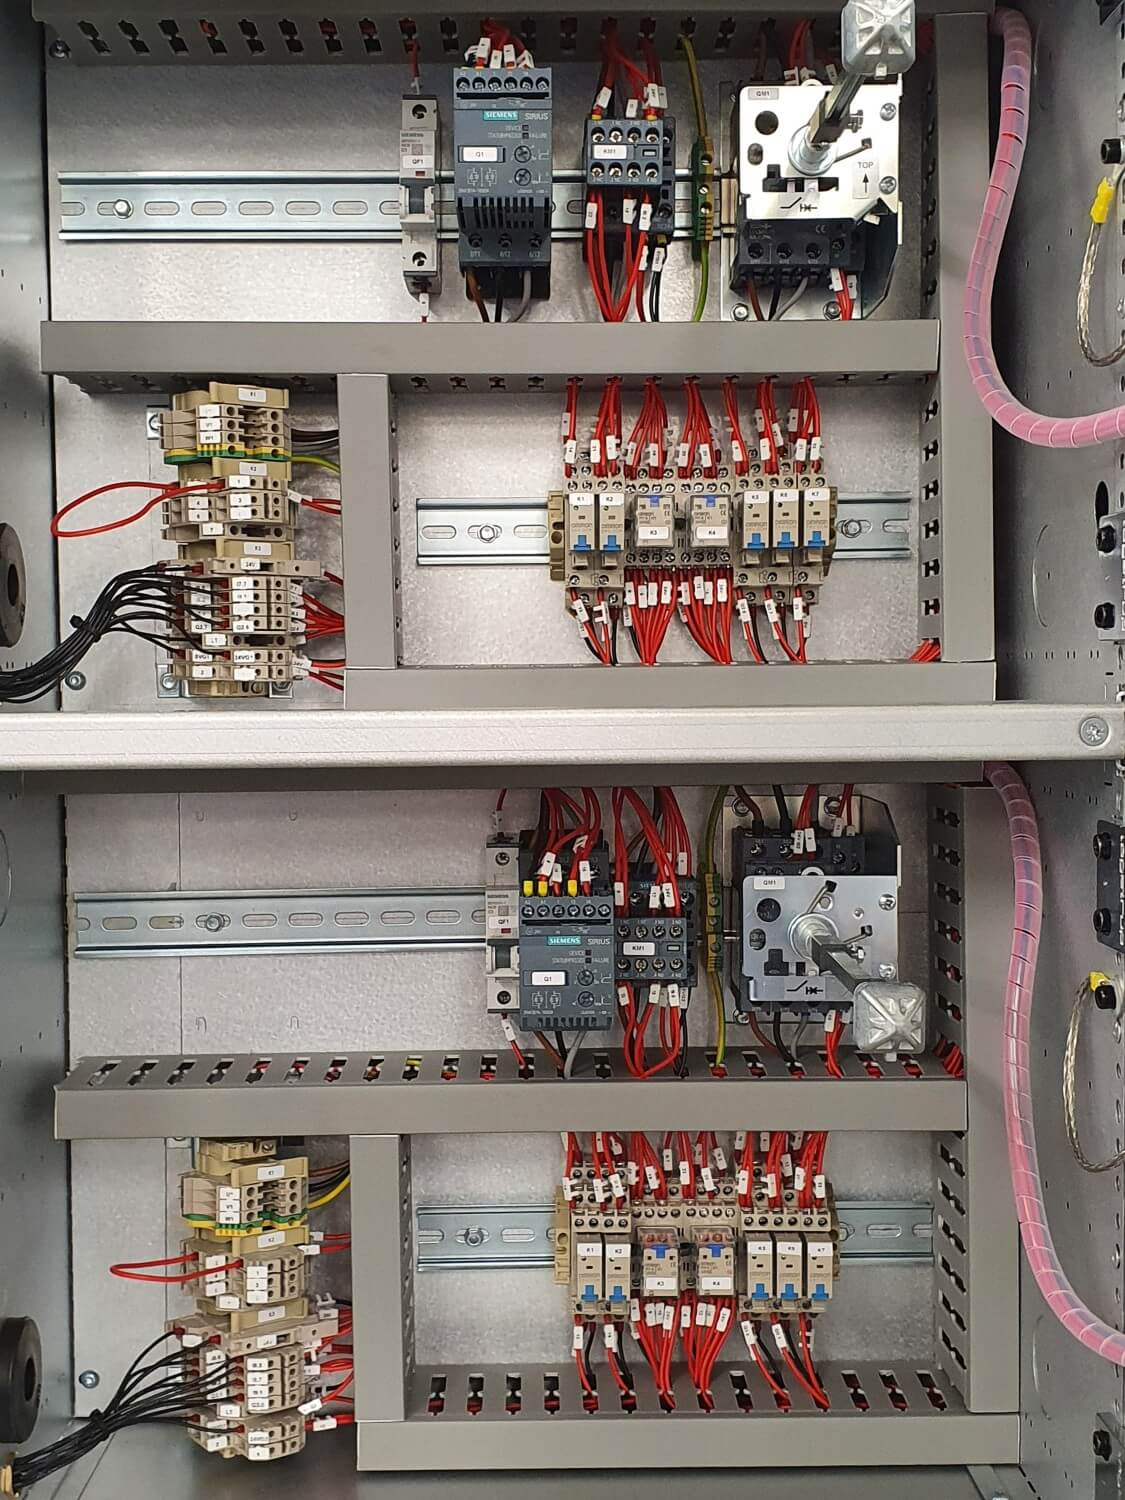 Alpha Drives Siemens Control Panels For Pumping Stations 4